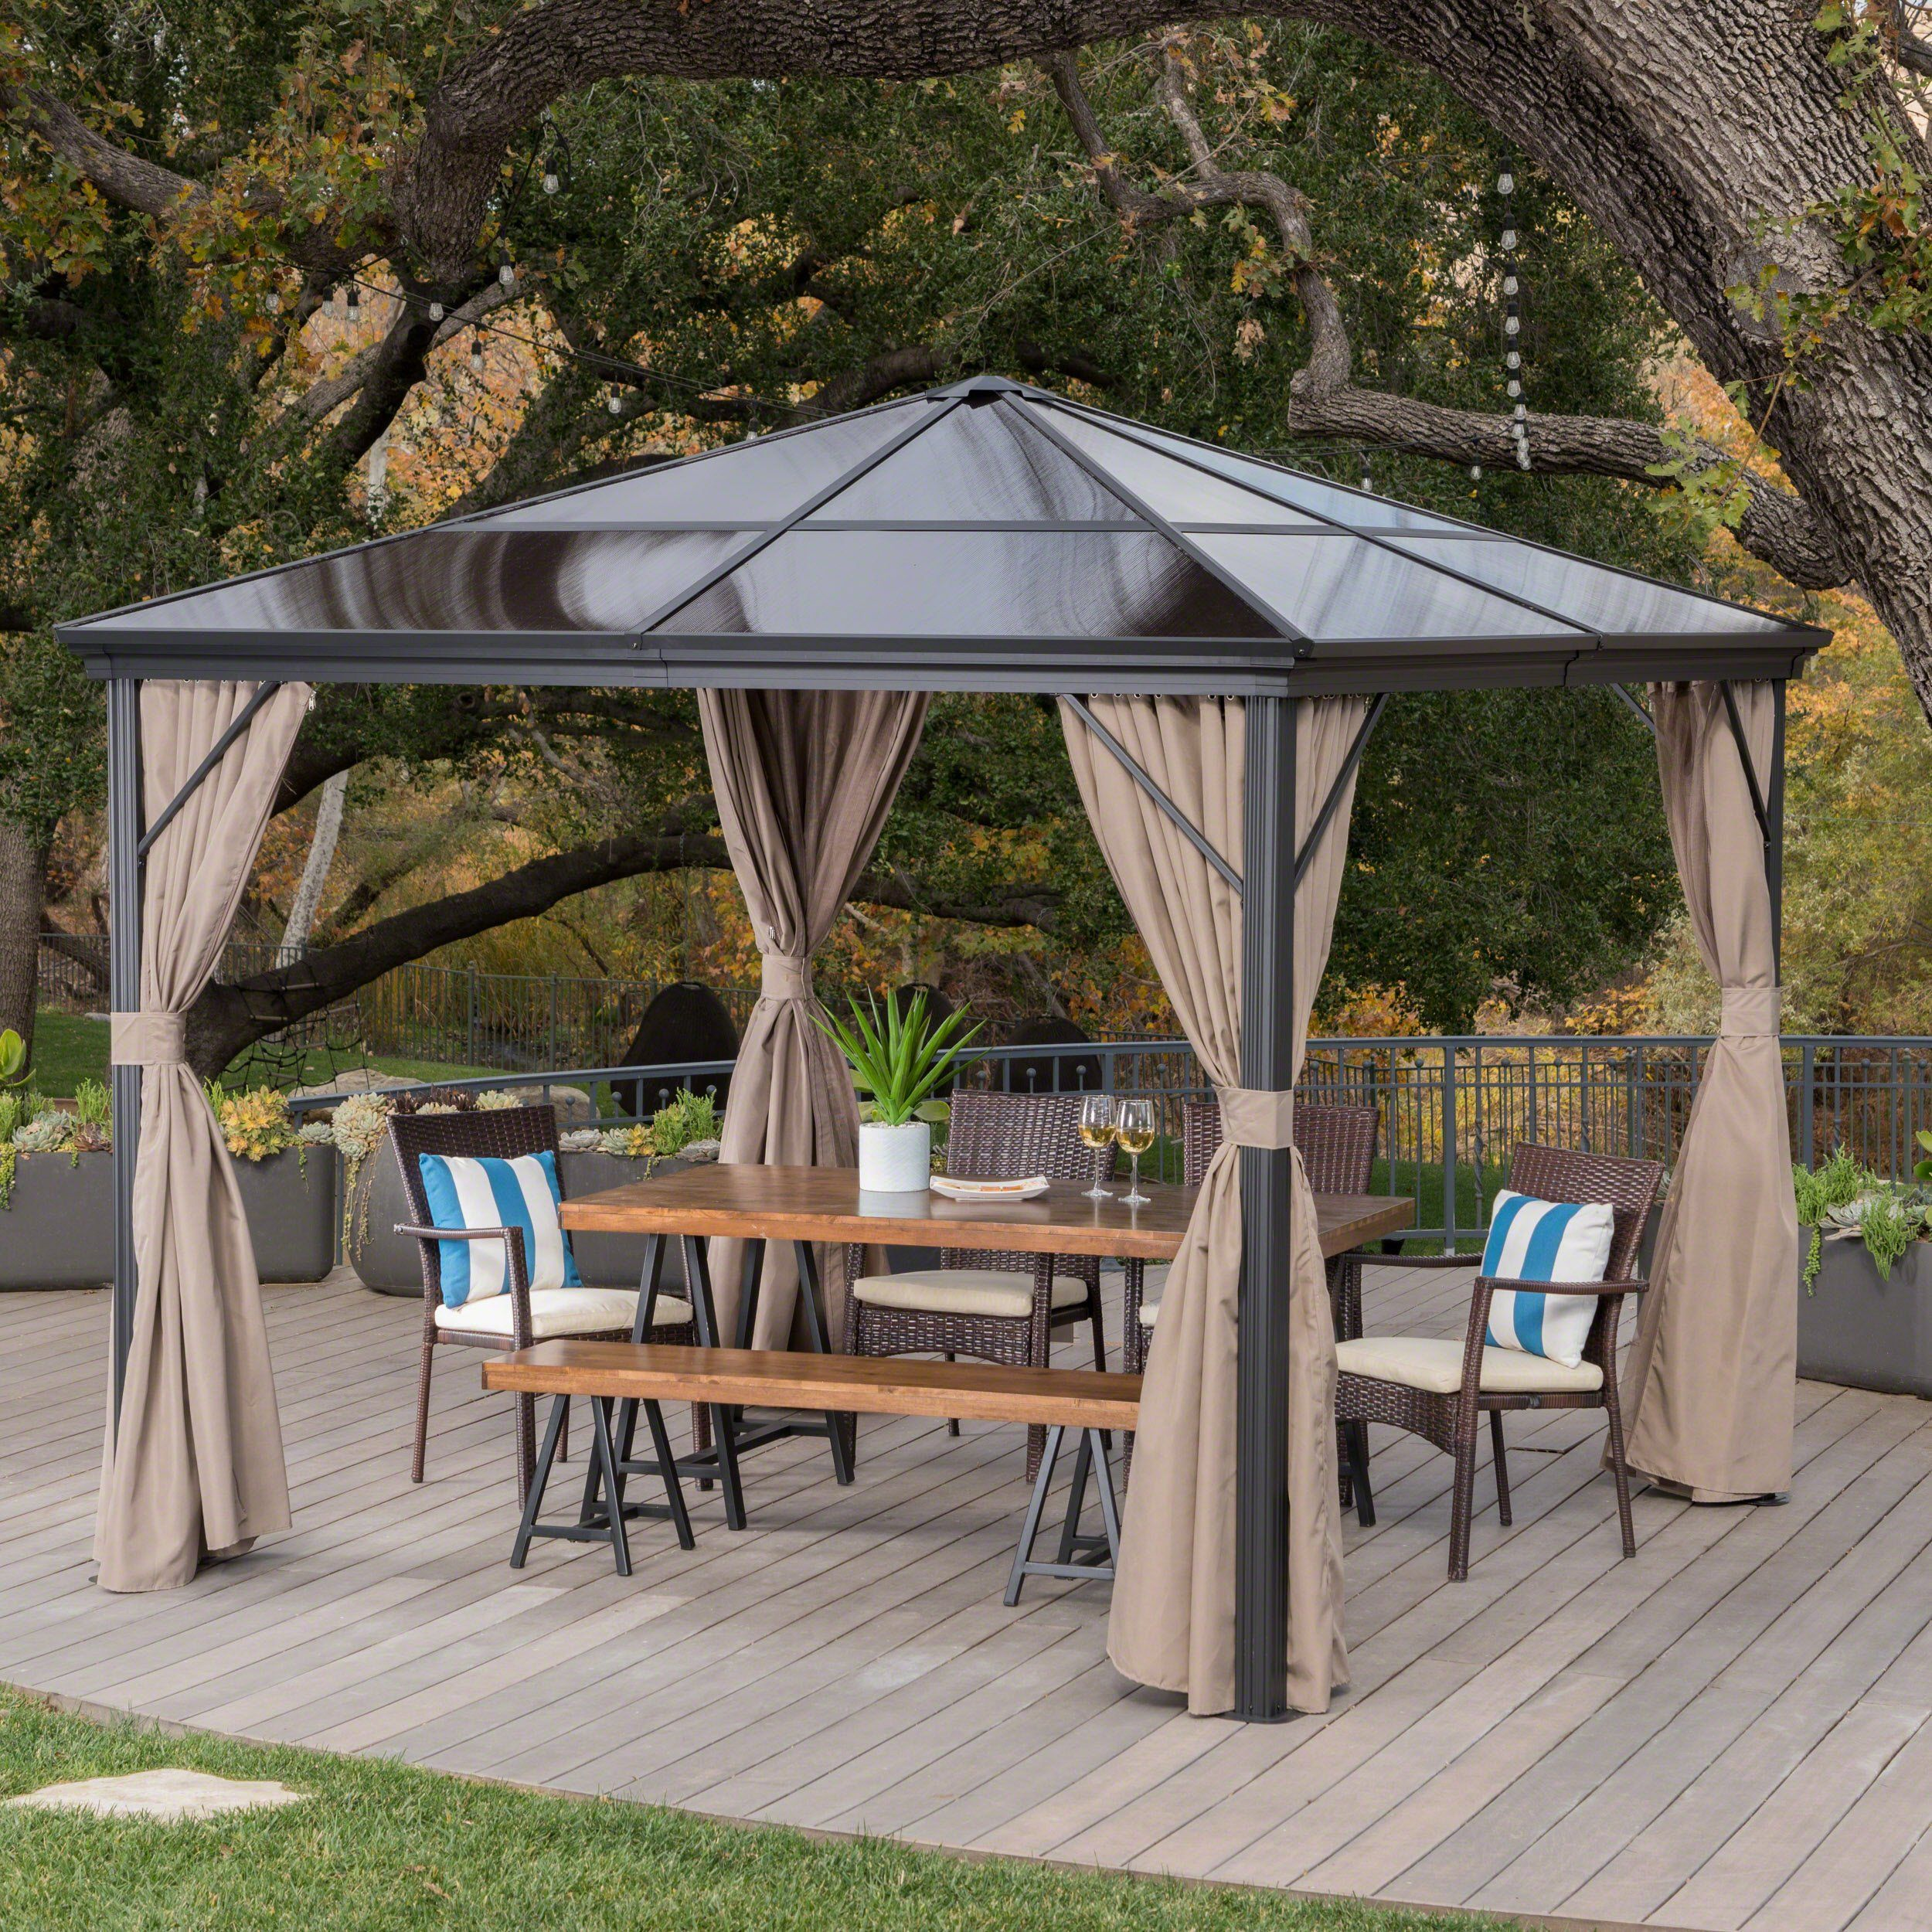 Bali Outdoor 10 X 10 Foot Rust Proof Aluminum Framed Hardtop Gazebo With Curtains Outdoor Pergola Hardtop Gazebo Pergola Plans